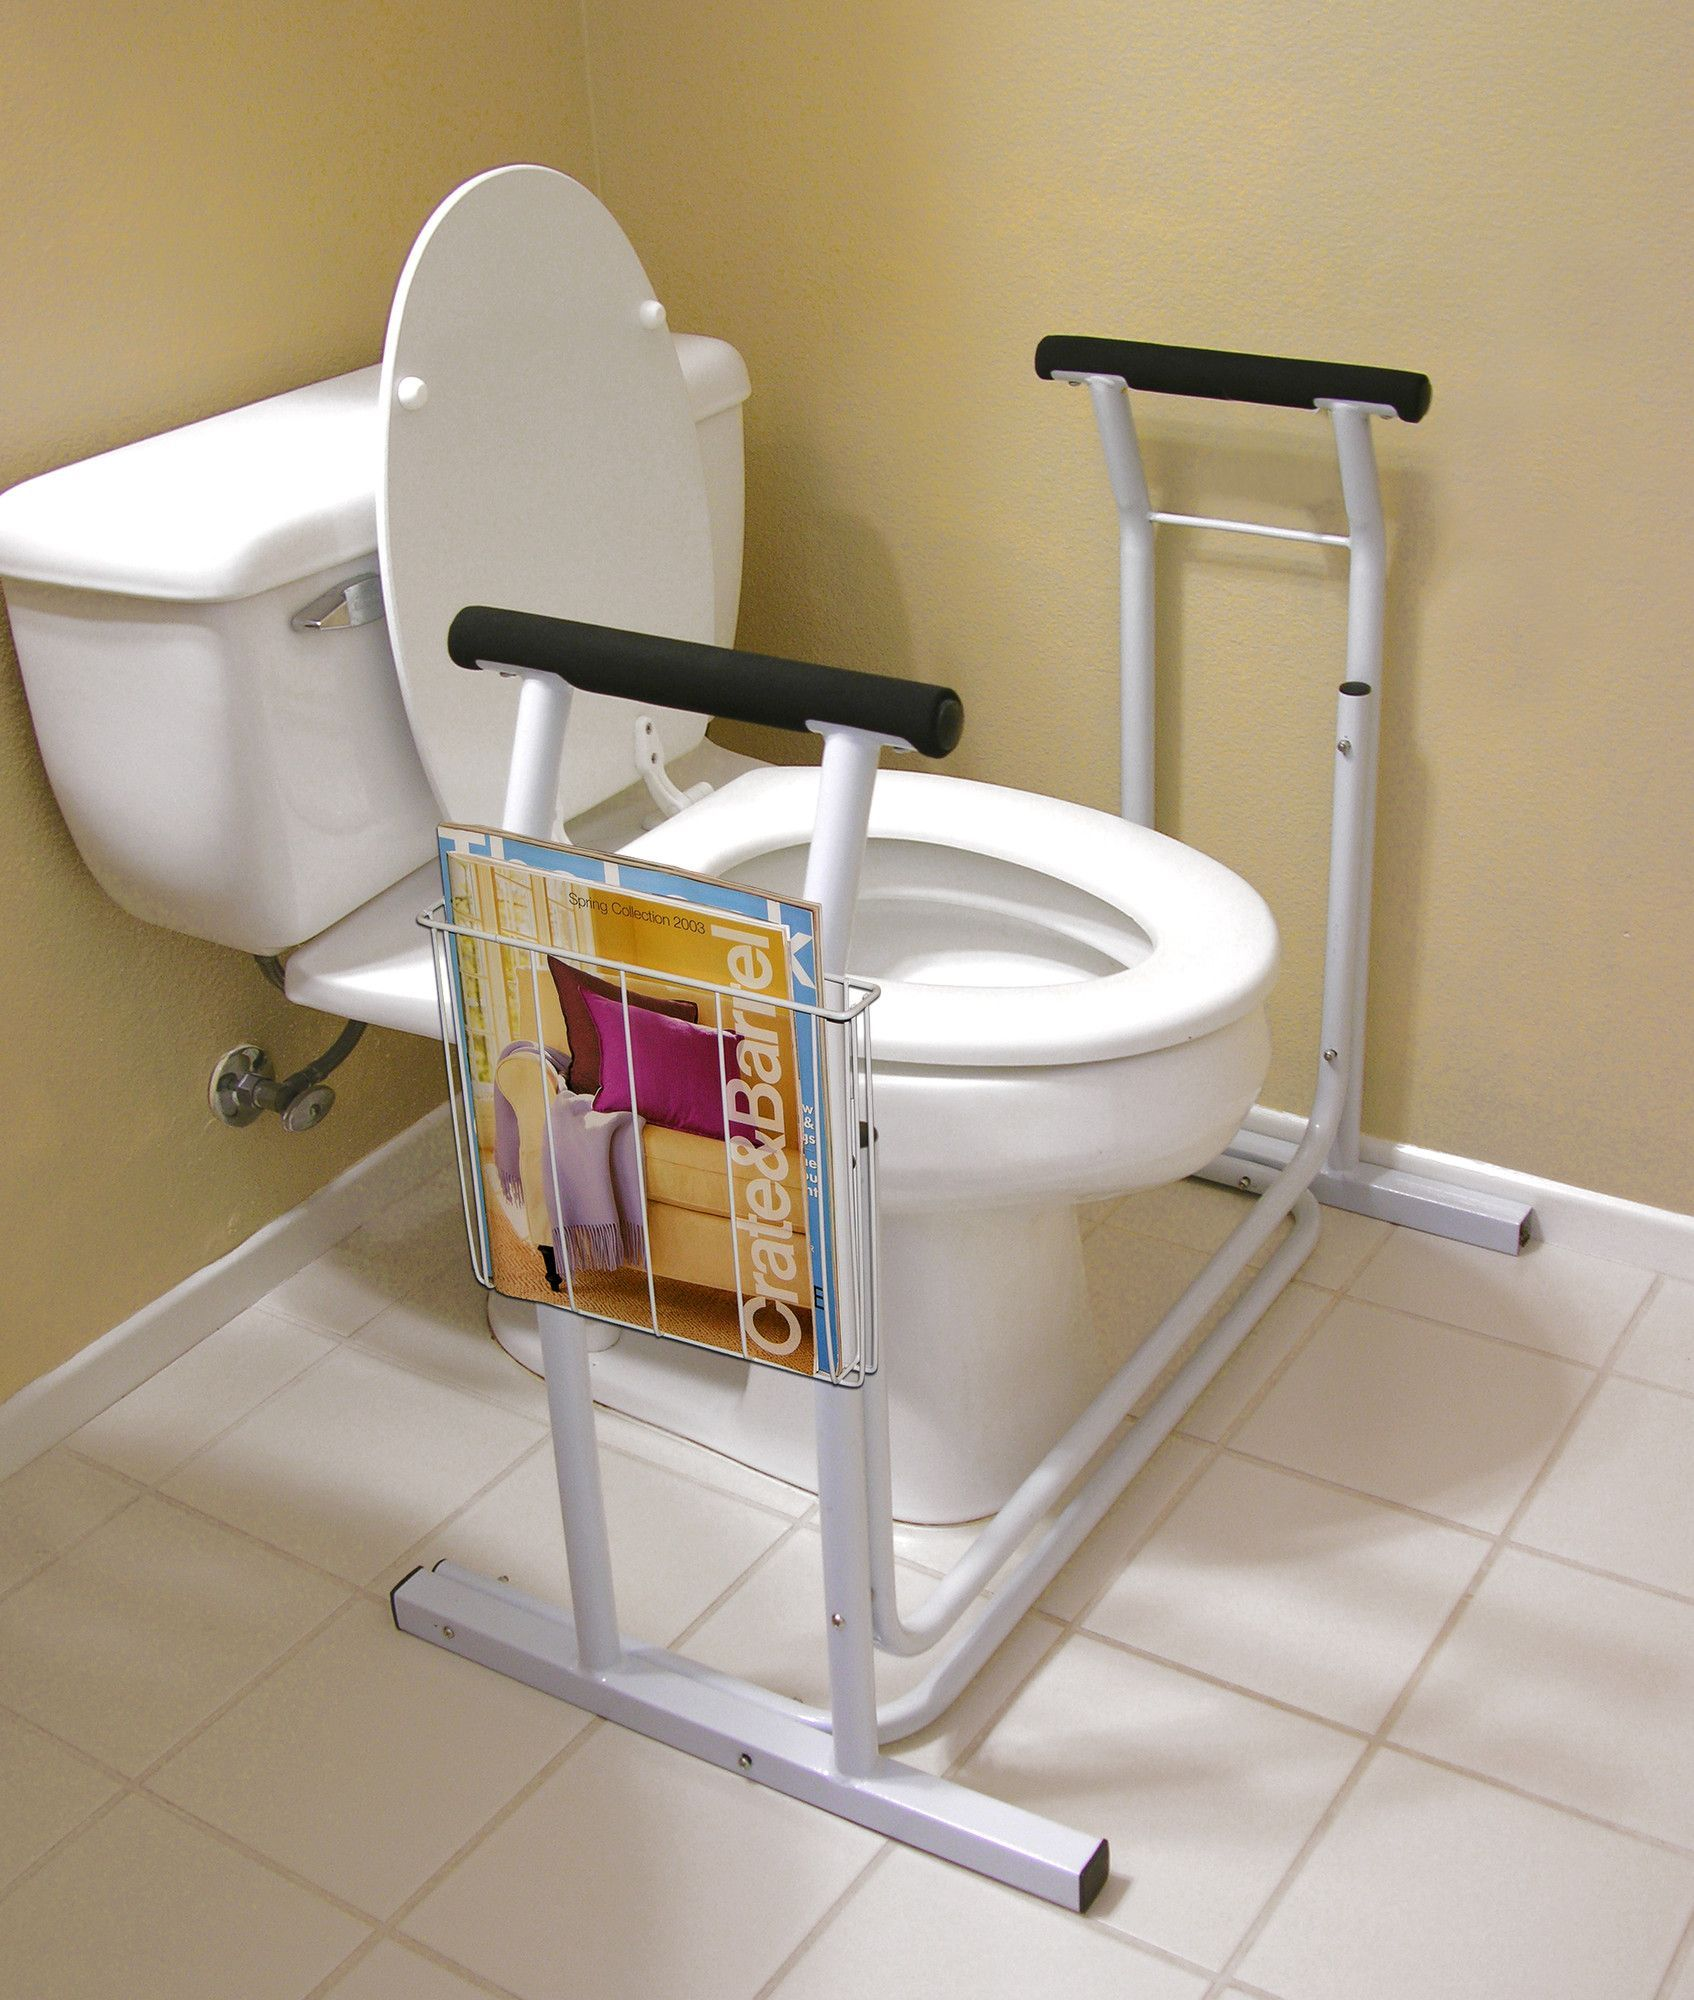 Deluxe Toilet Safety Frame   Toilet, Safety and Spa baths